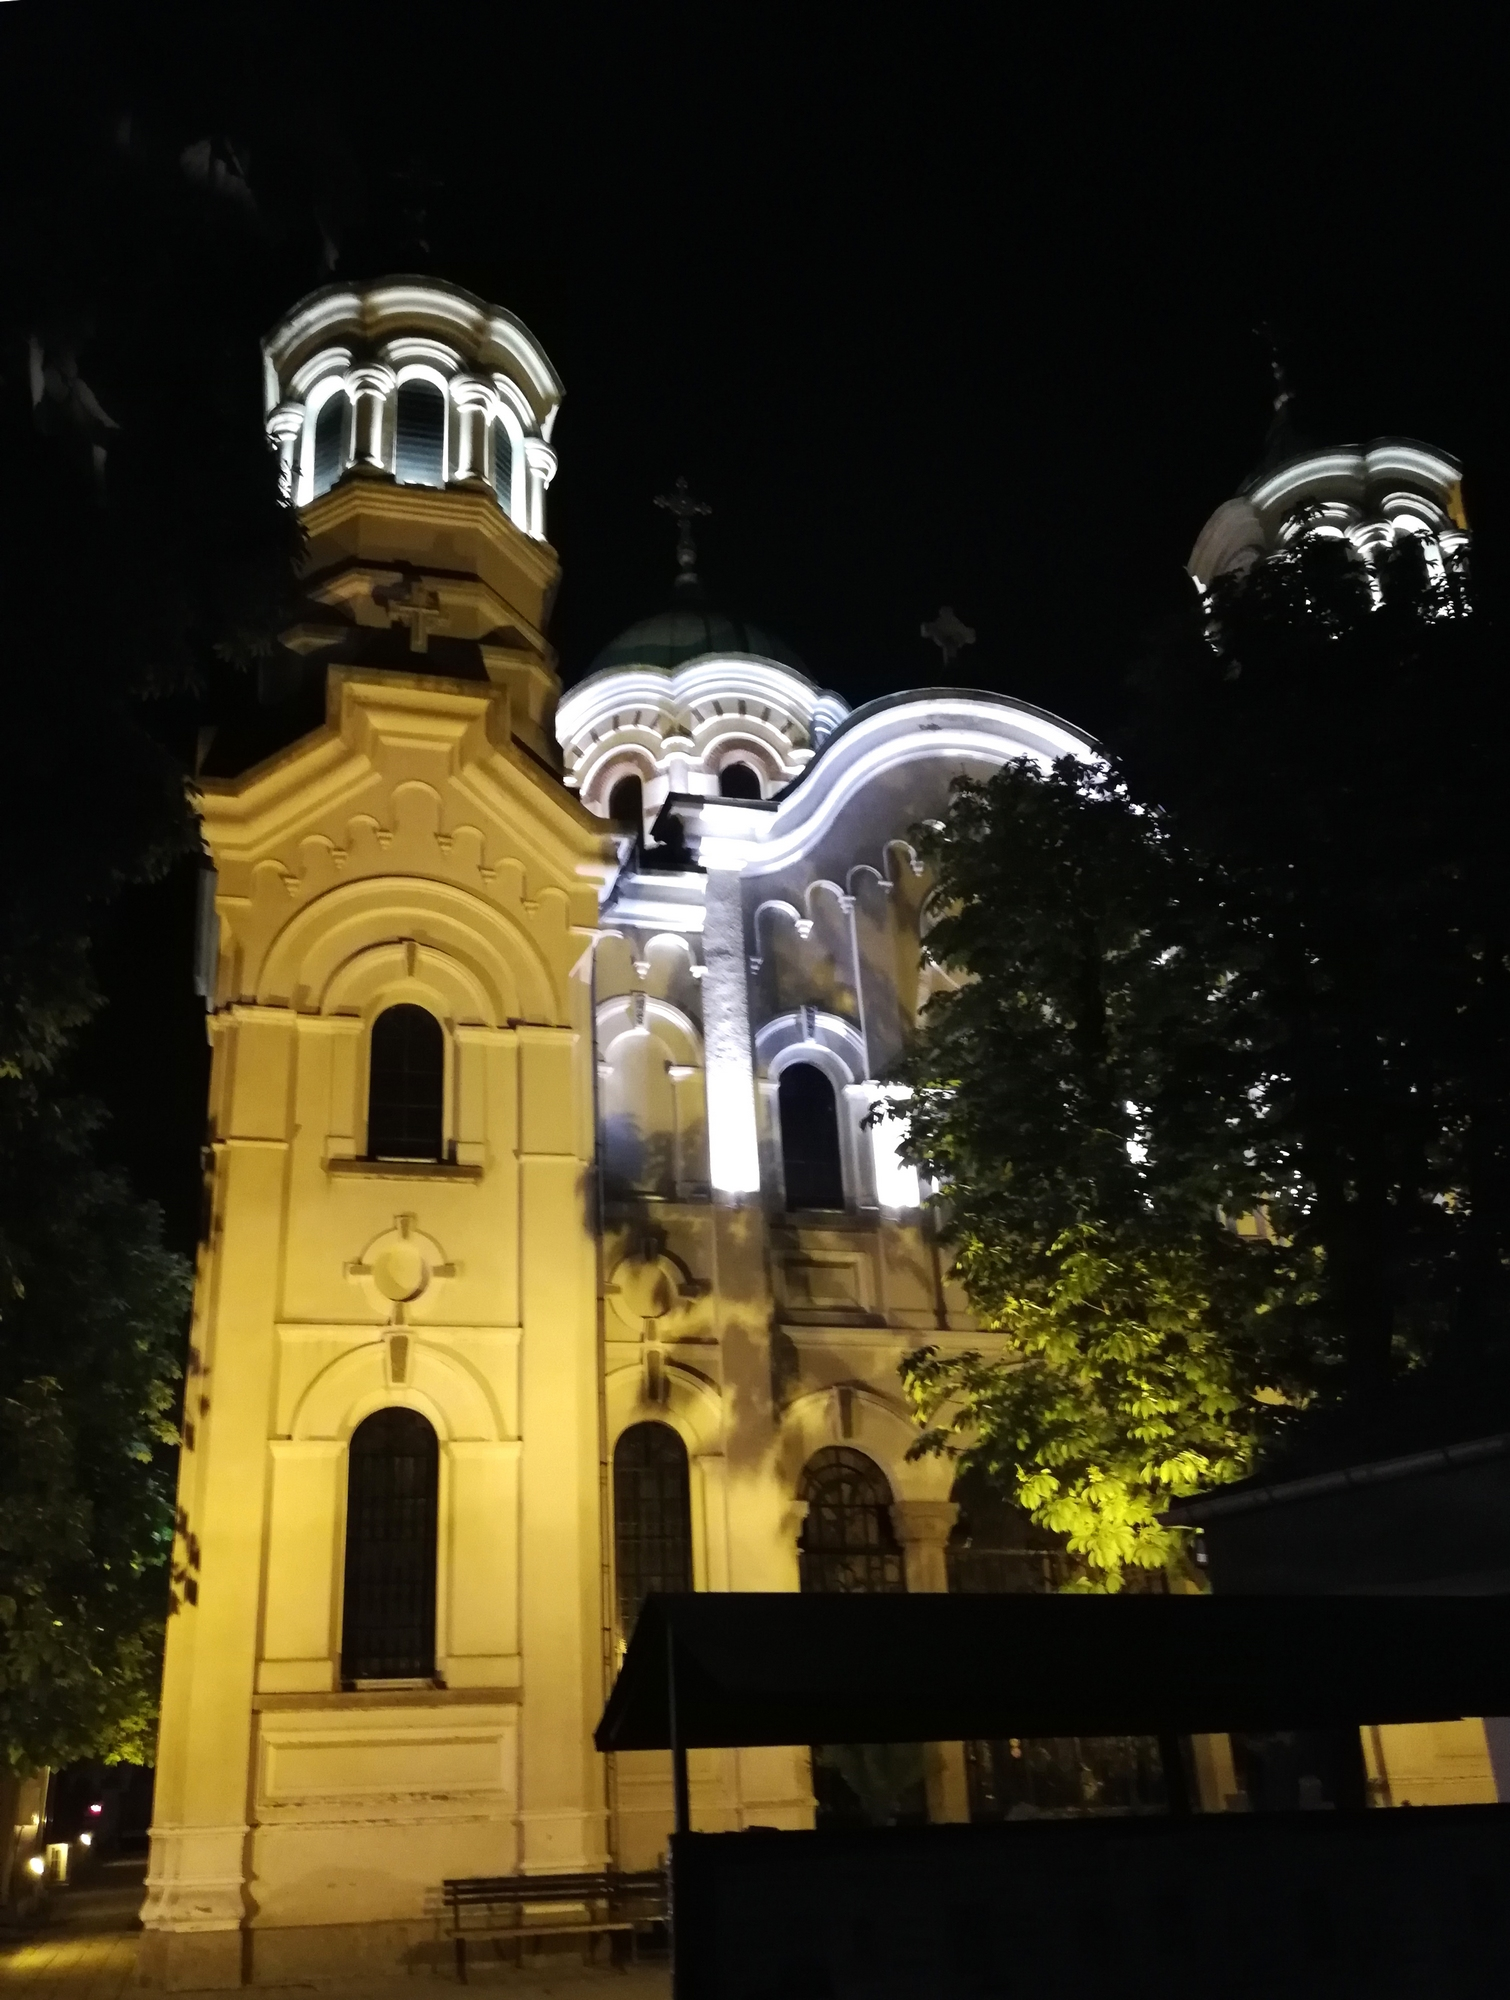 St. Nicholas church in Stara Zagora